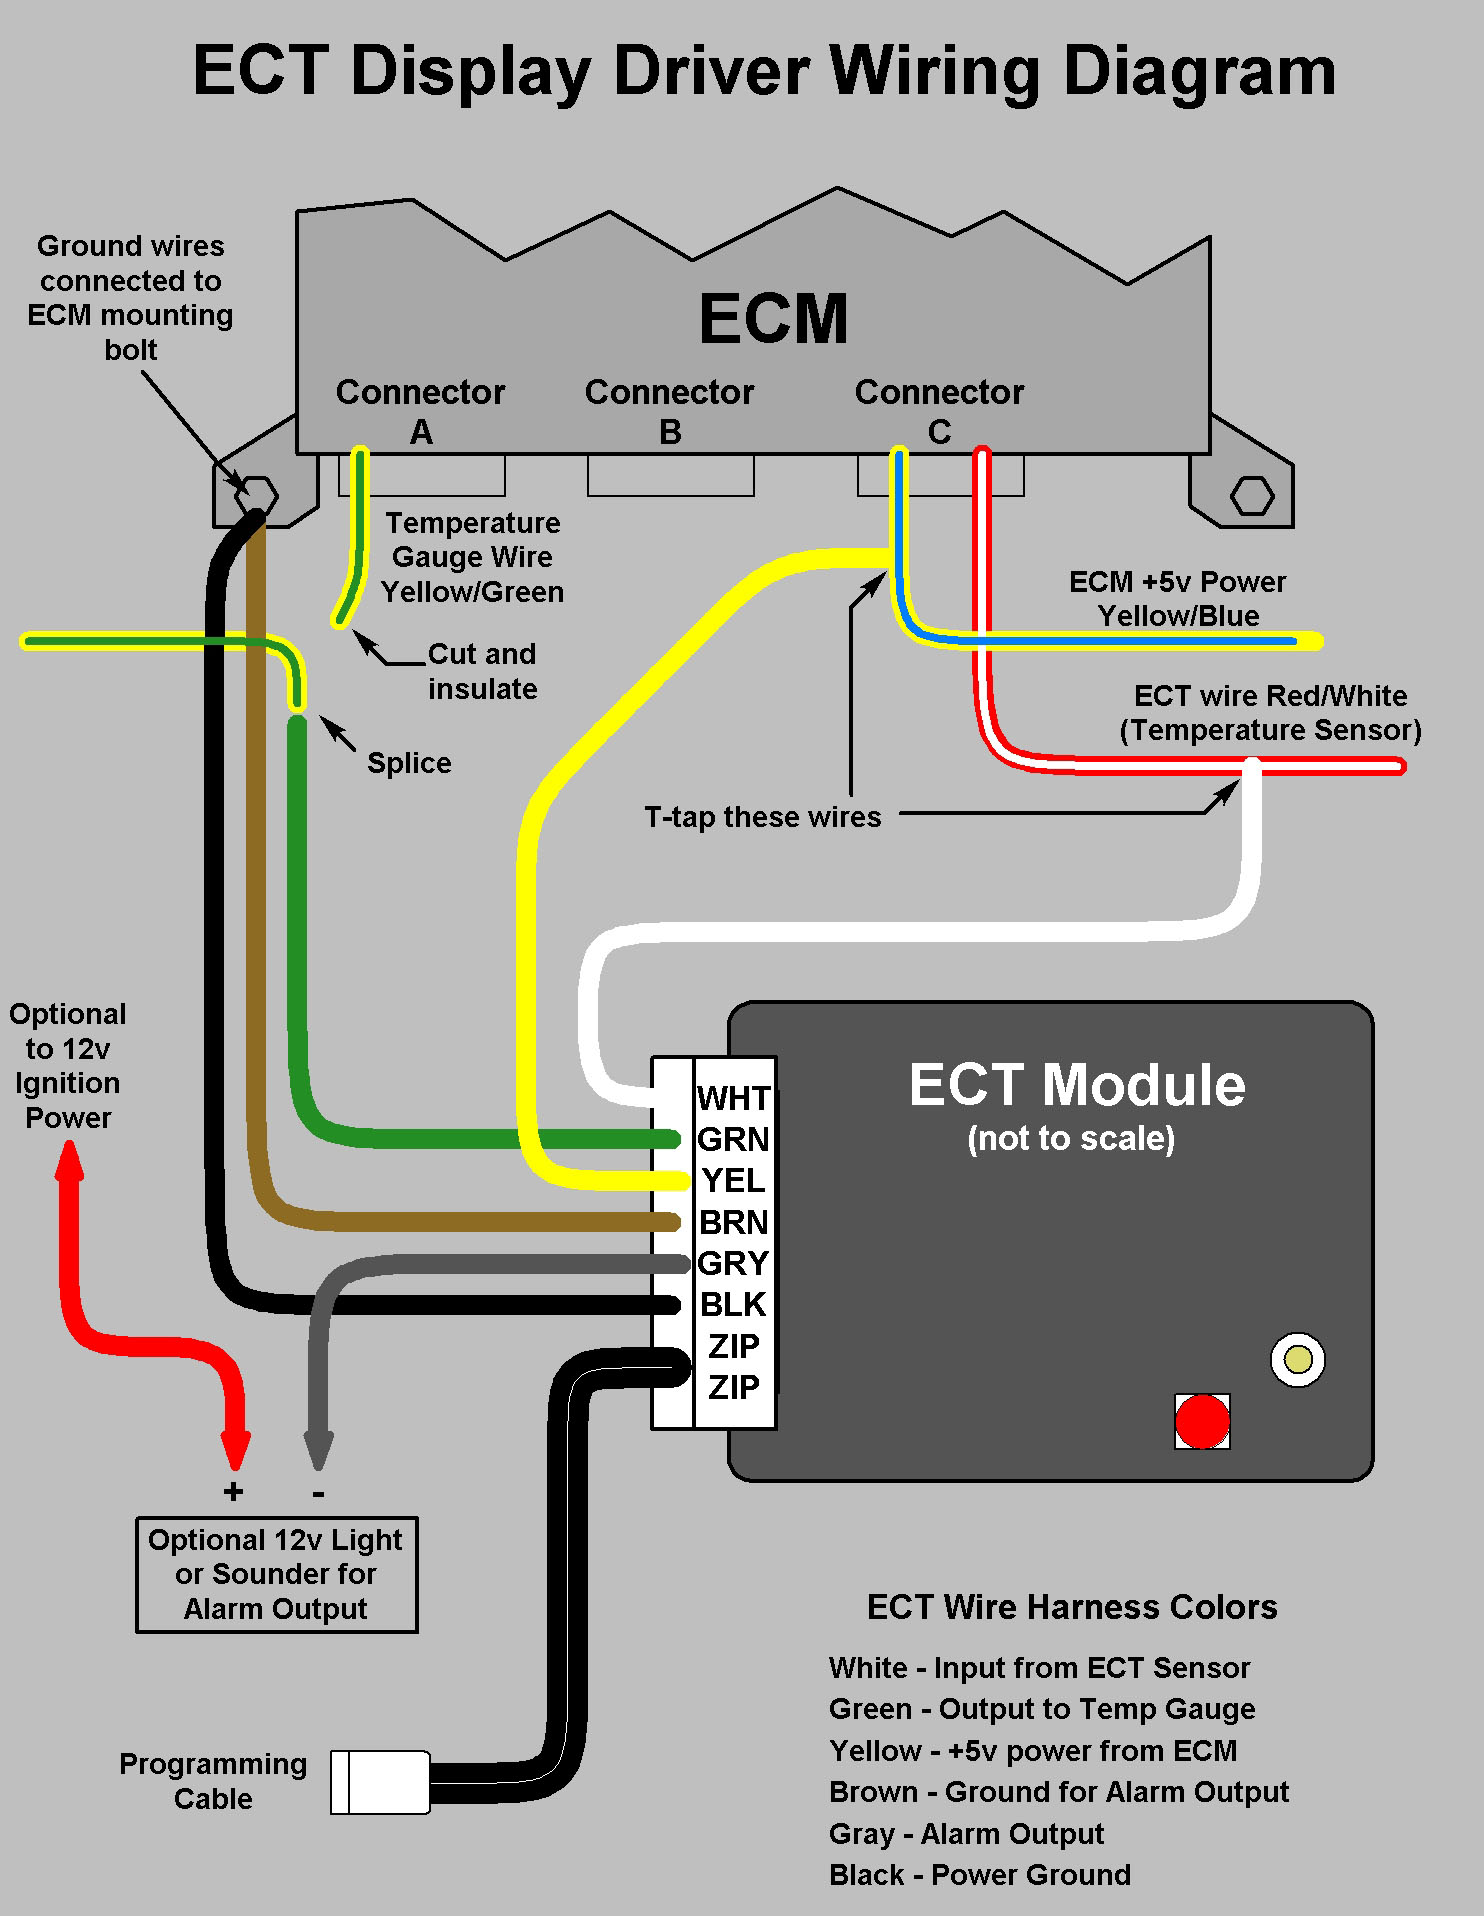 ECT wiring diagram ems wiring diagram medical diagram \u2022 free wiring diagrams life S2000 AEM V2 at gsmx.co